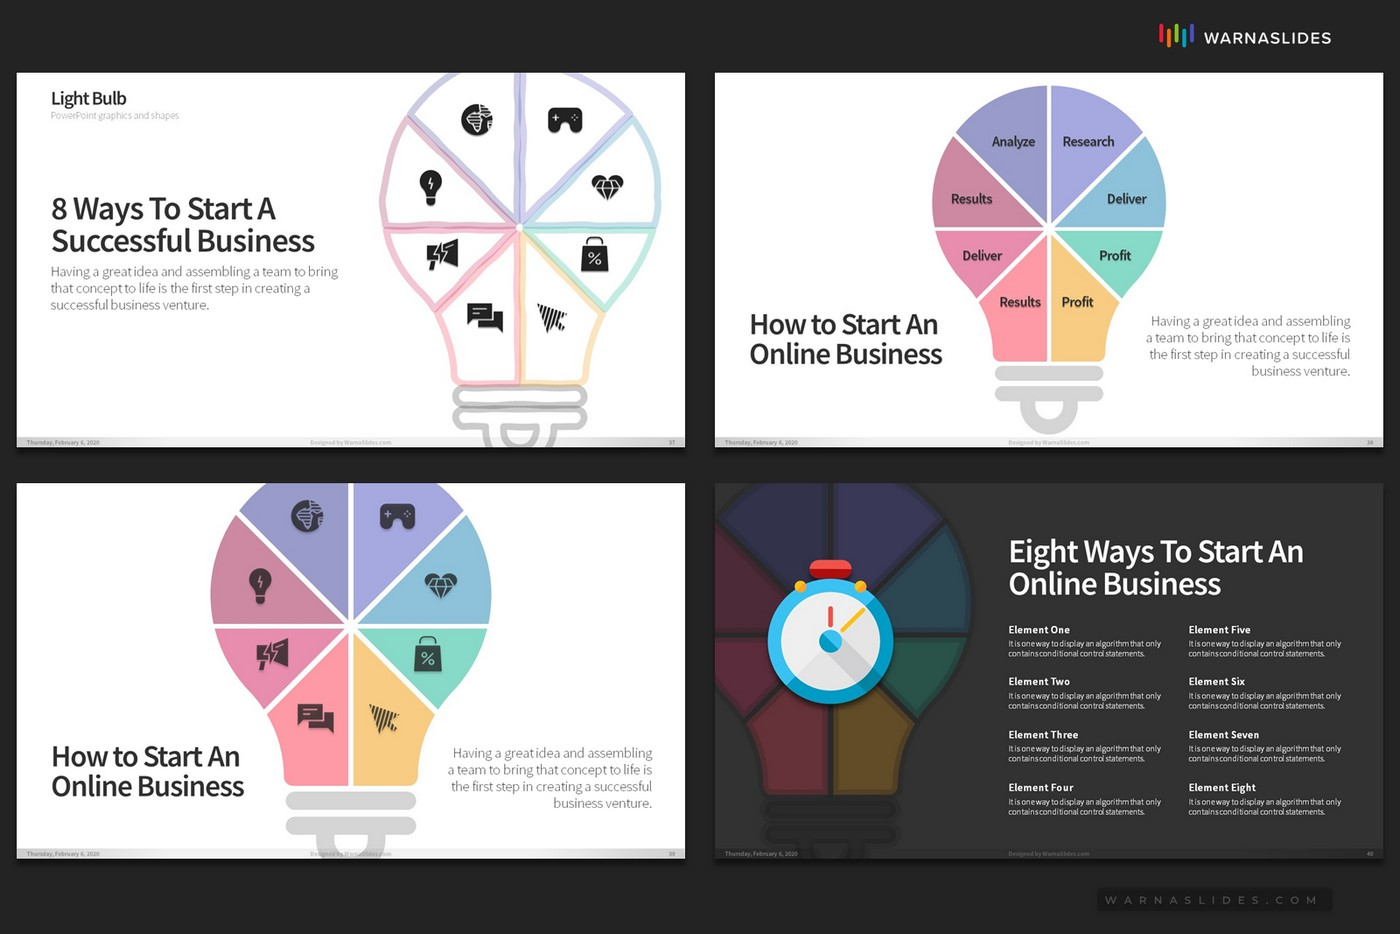 Light-Bulb-Ideas-PowerPoint-Template-for-Business-Pitch-Deck-Professional-Creative-PowerPoint-Icons-010